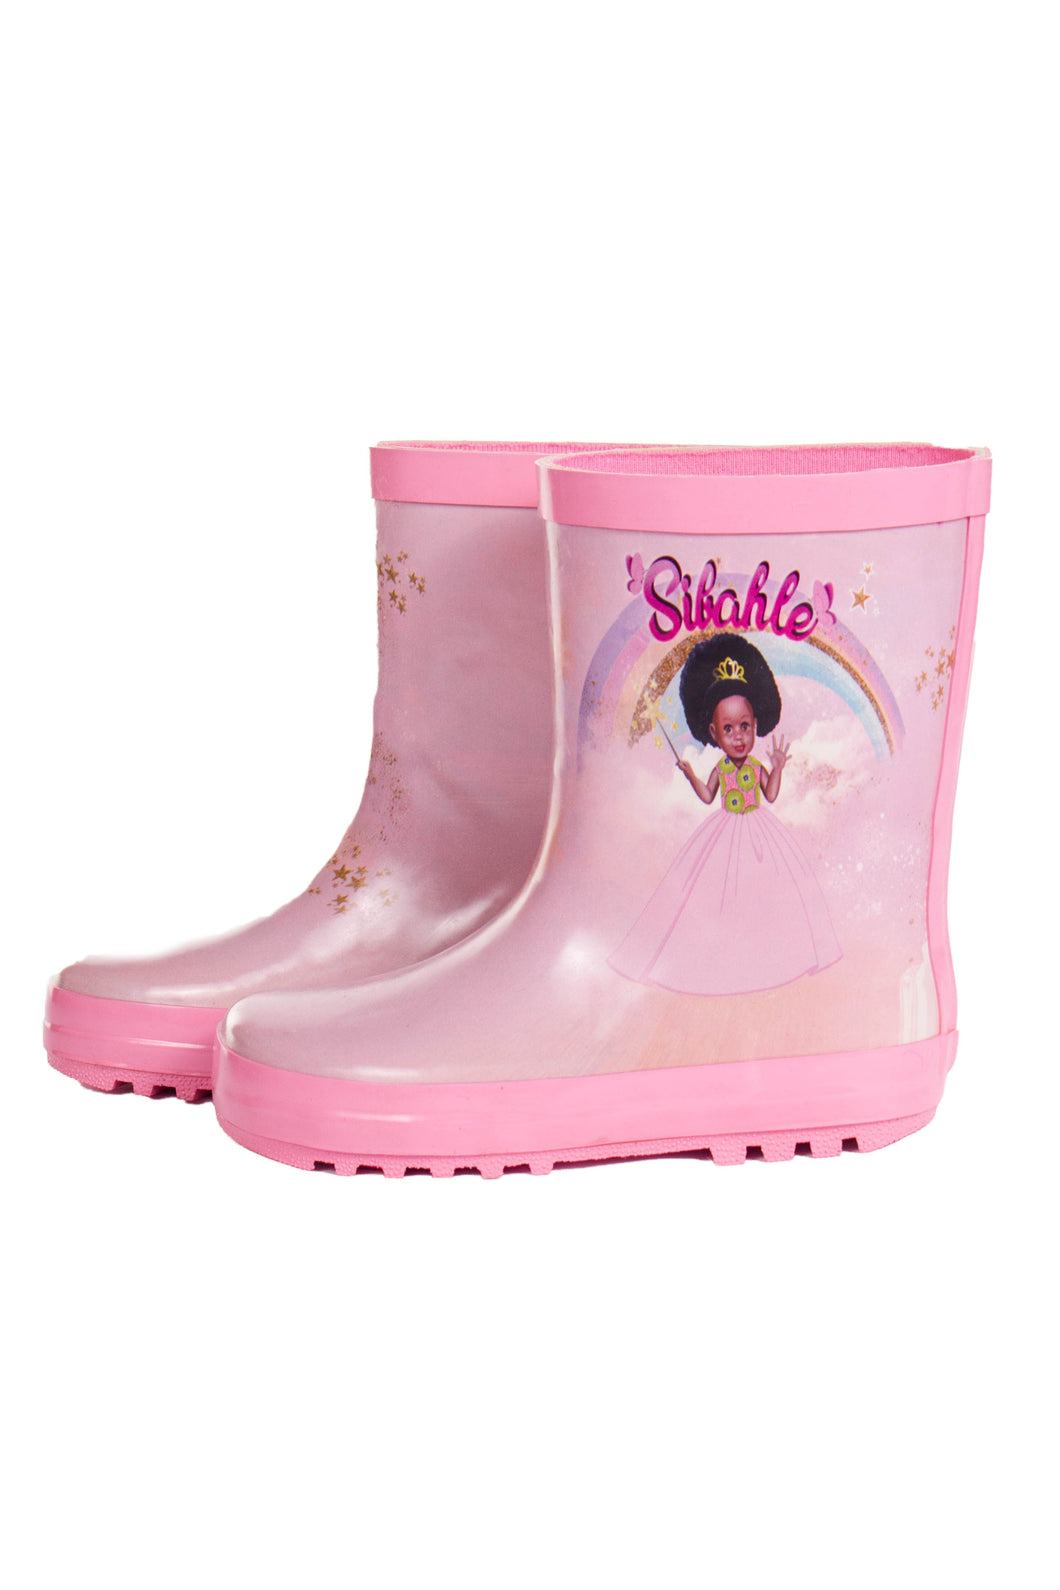 Pretty In Pink Wellingtons - Sibahle Collection